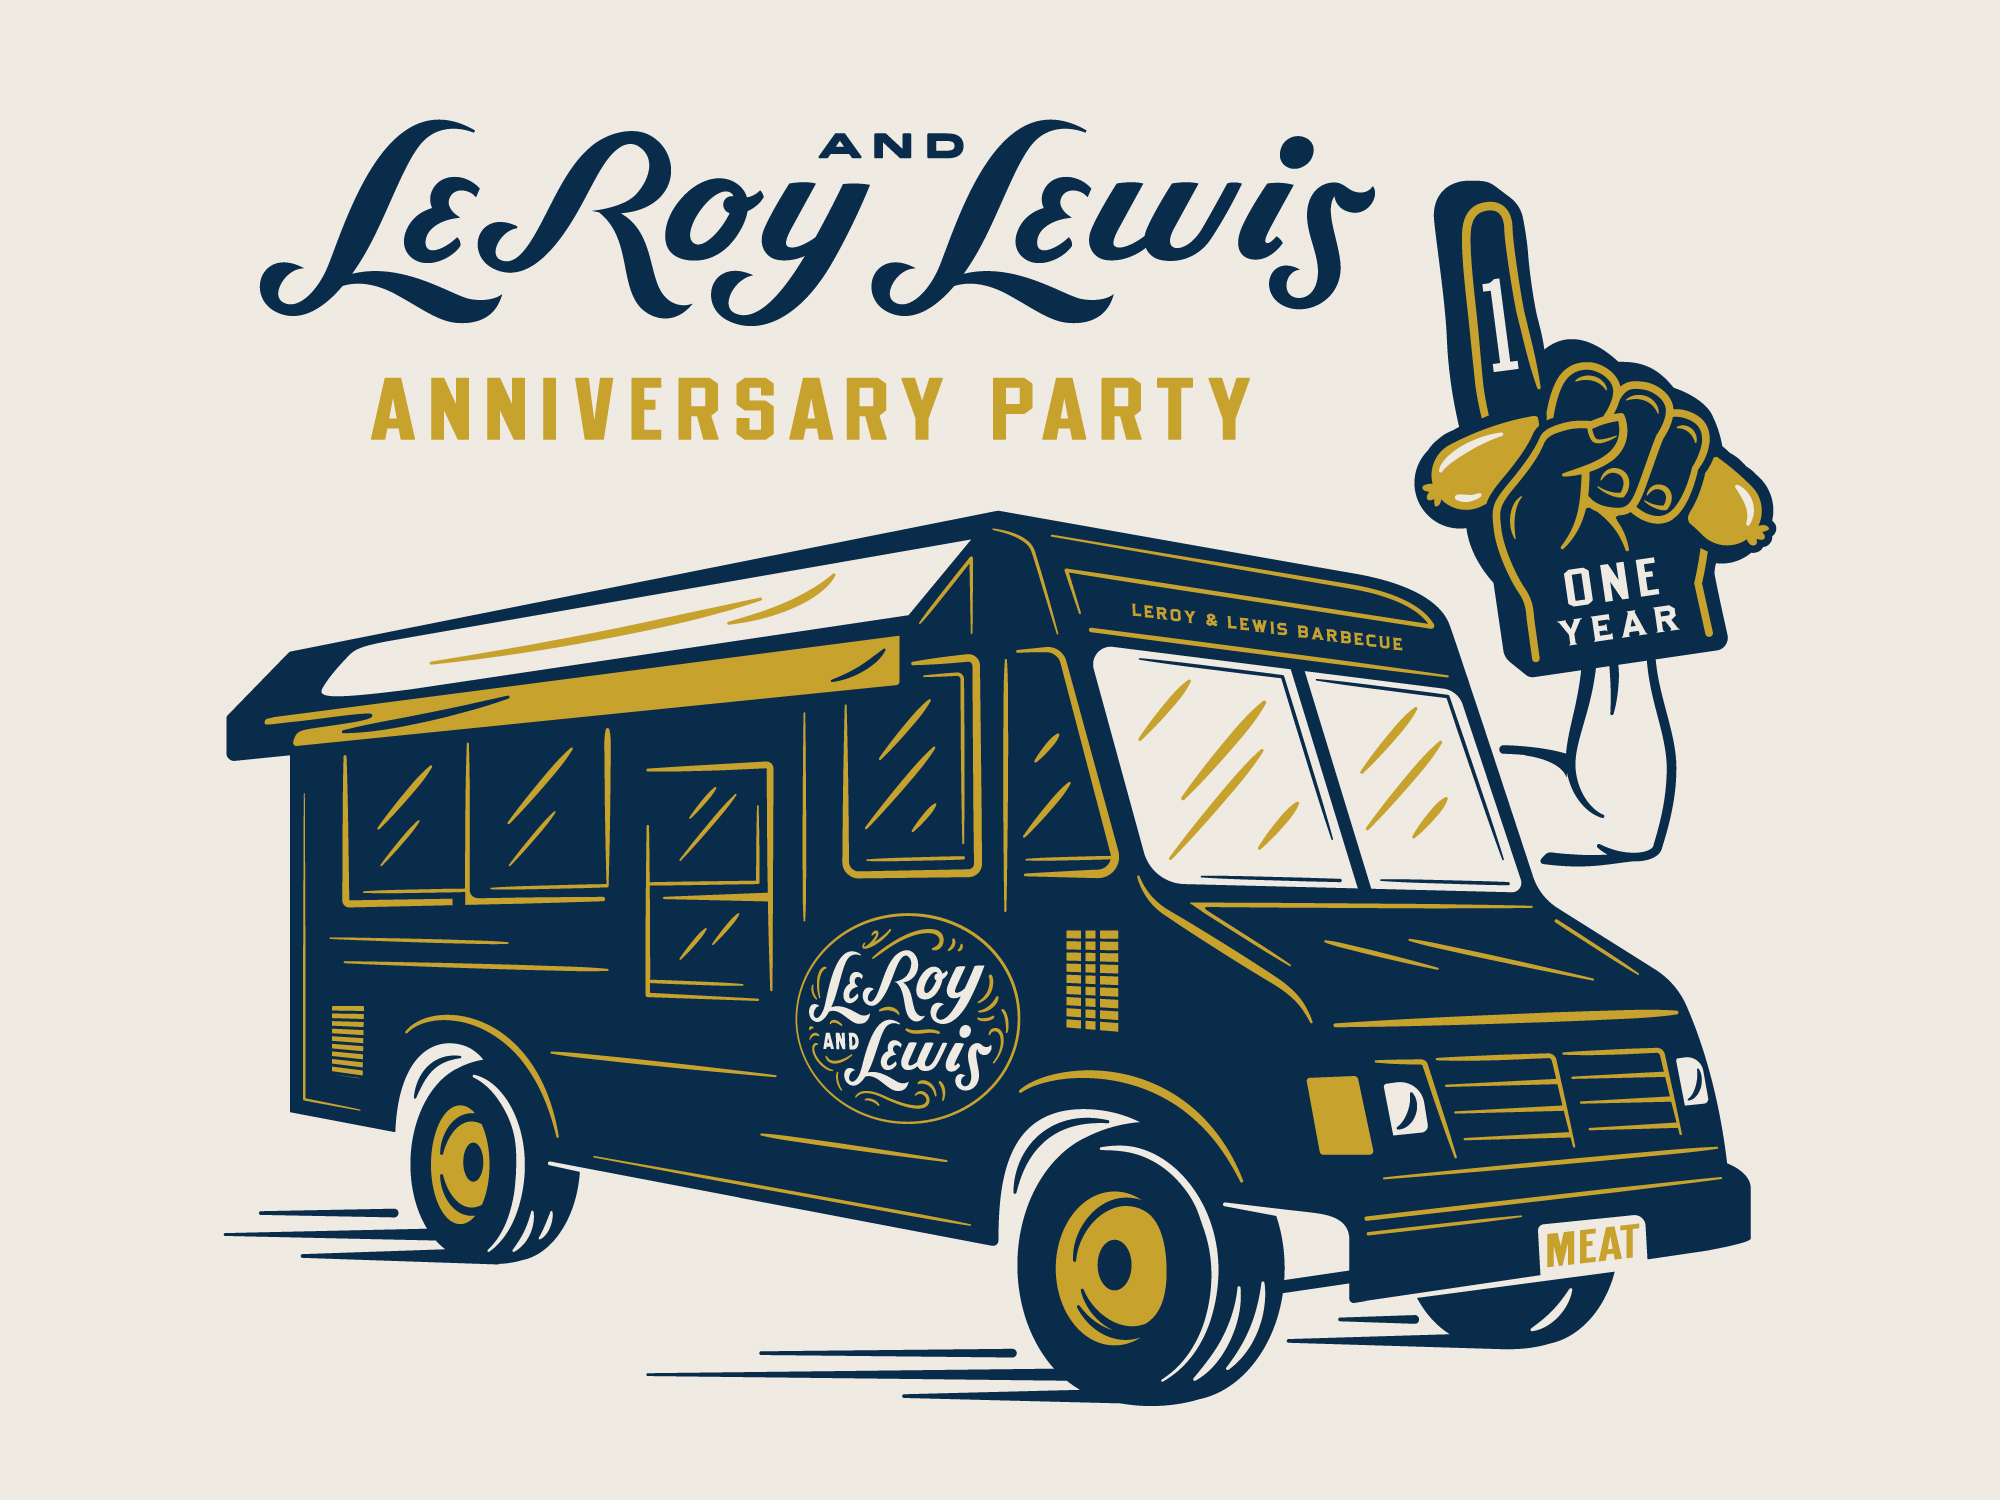 Leroy and Lewis Barbecue Anniversary Artwork